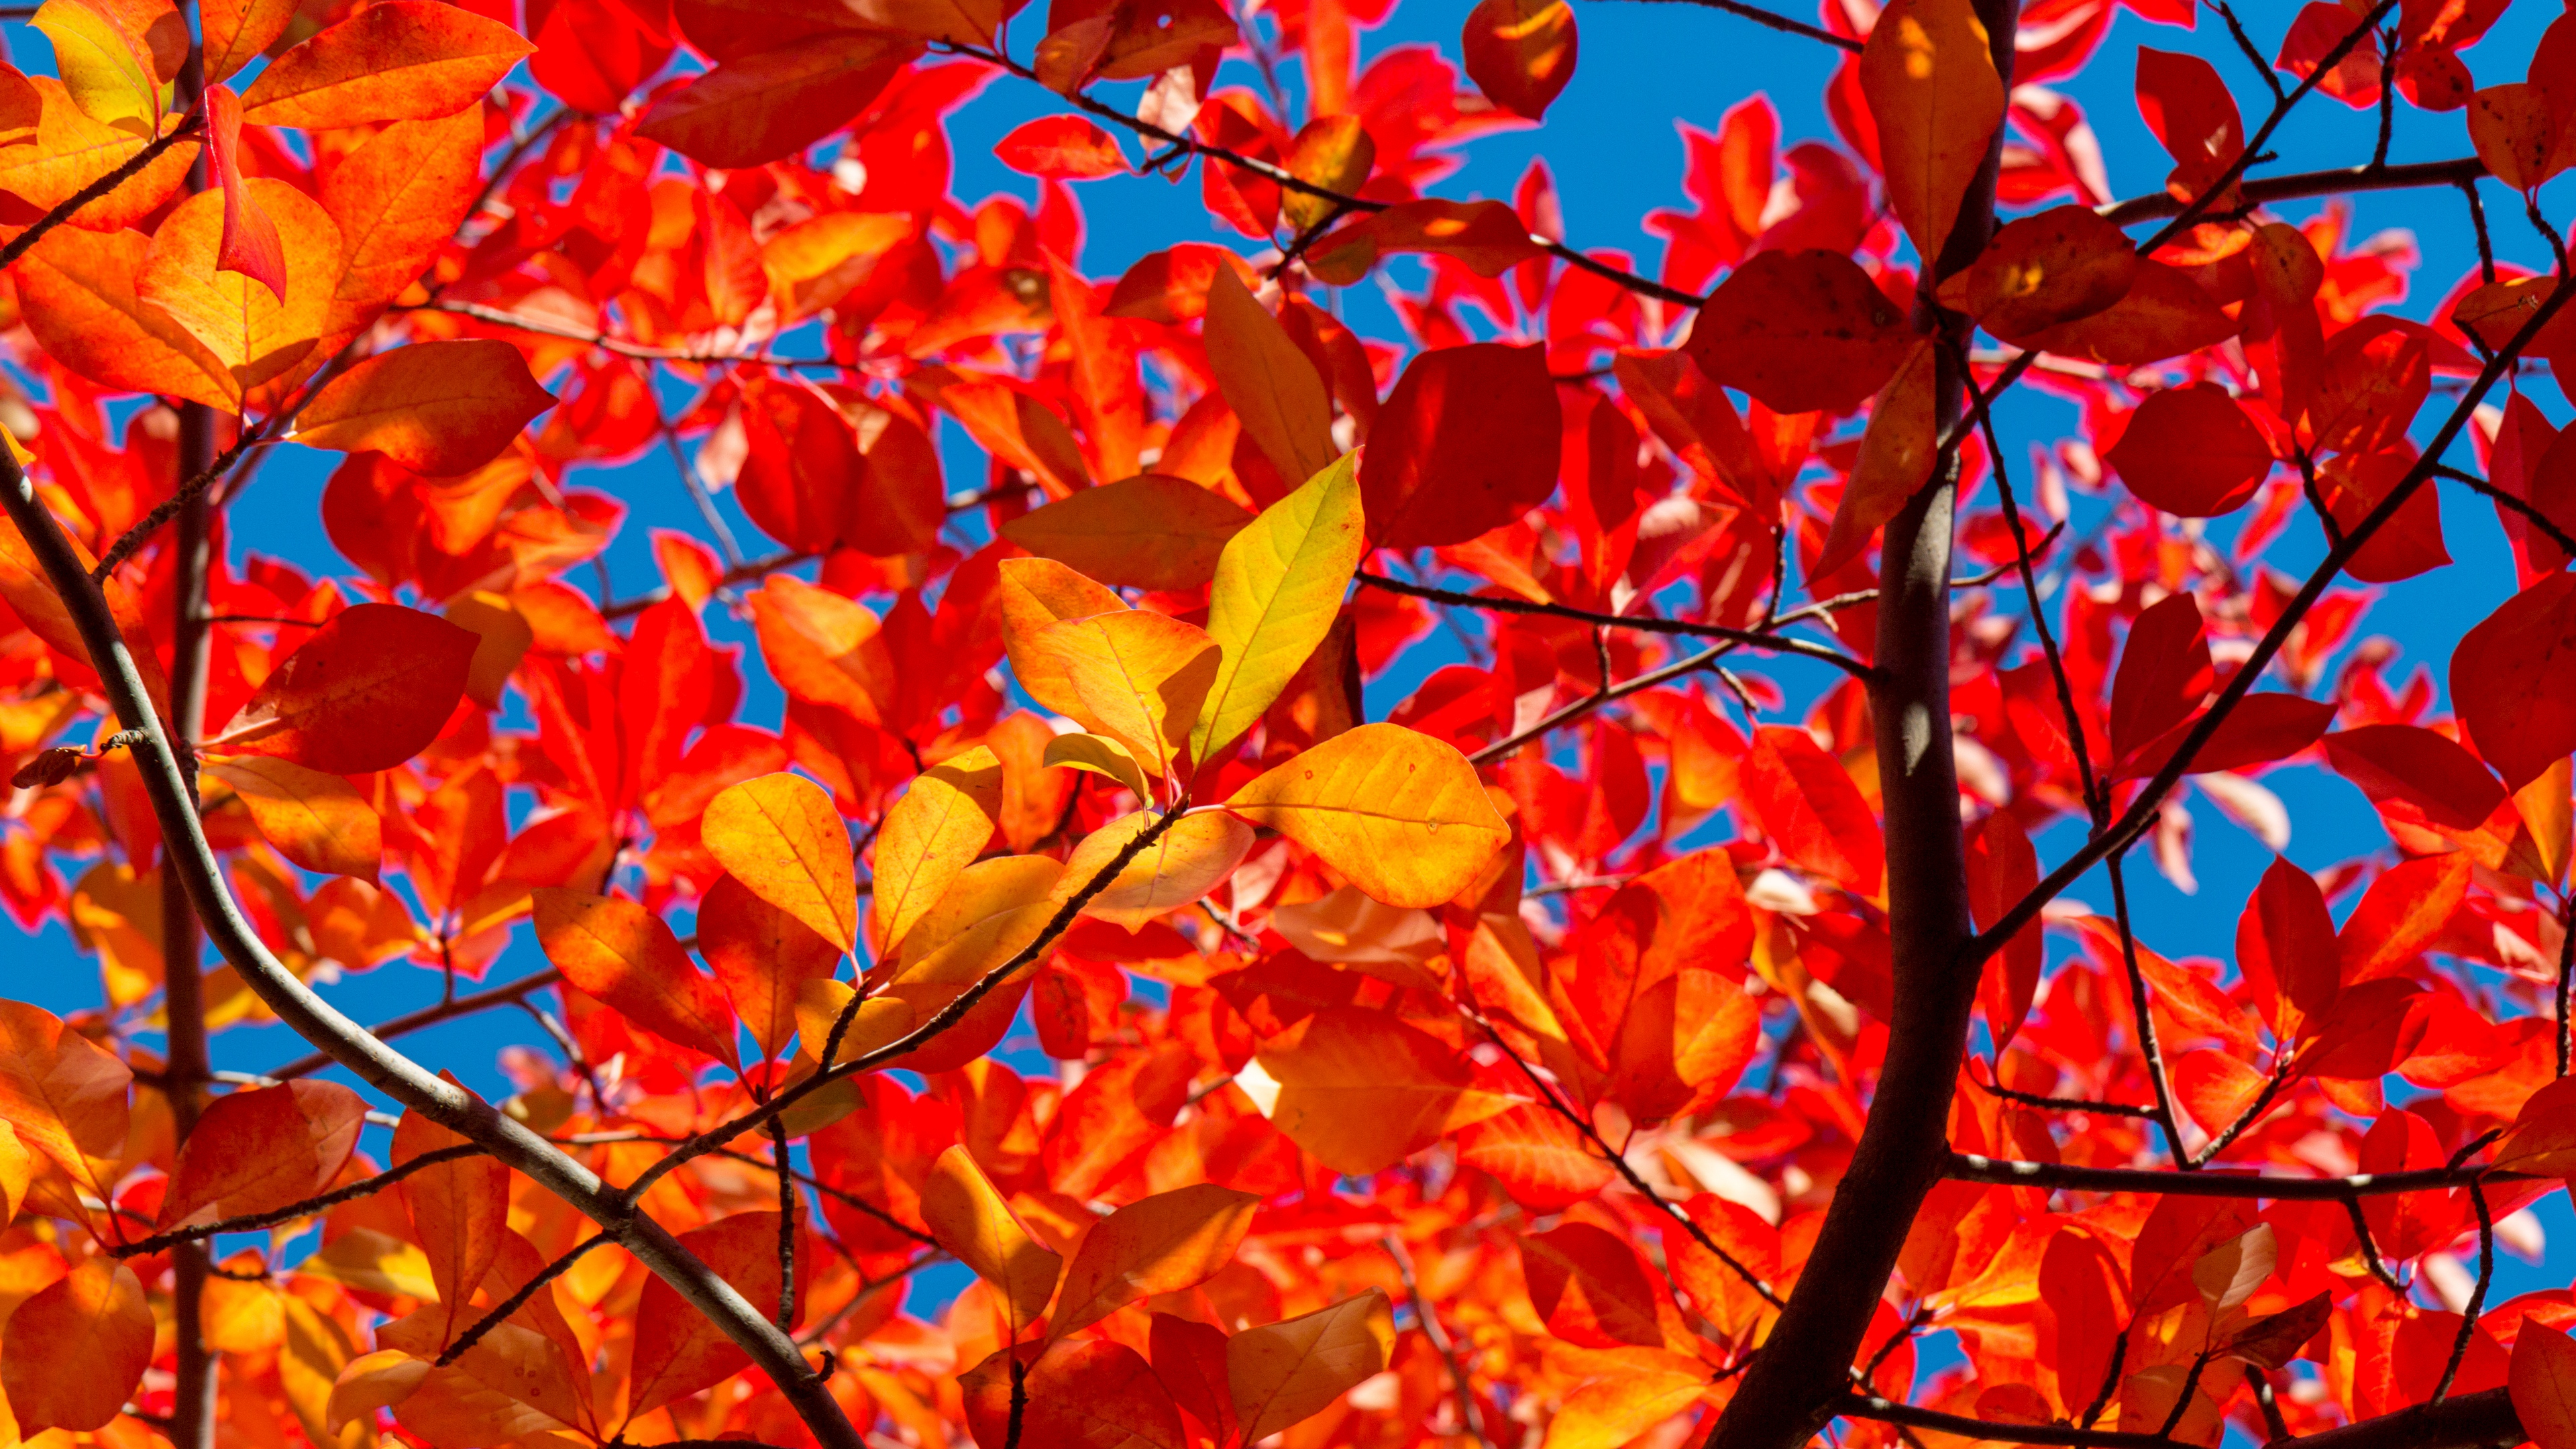 leaves branches autumn sunny 4k 1541115401 - leaves, branches, autumn, sunny 4k - Leaves, branches, Autumn